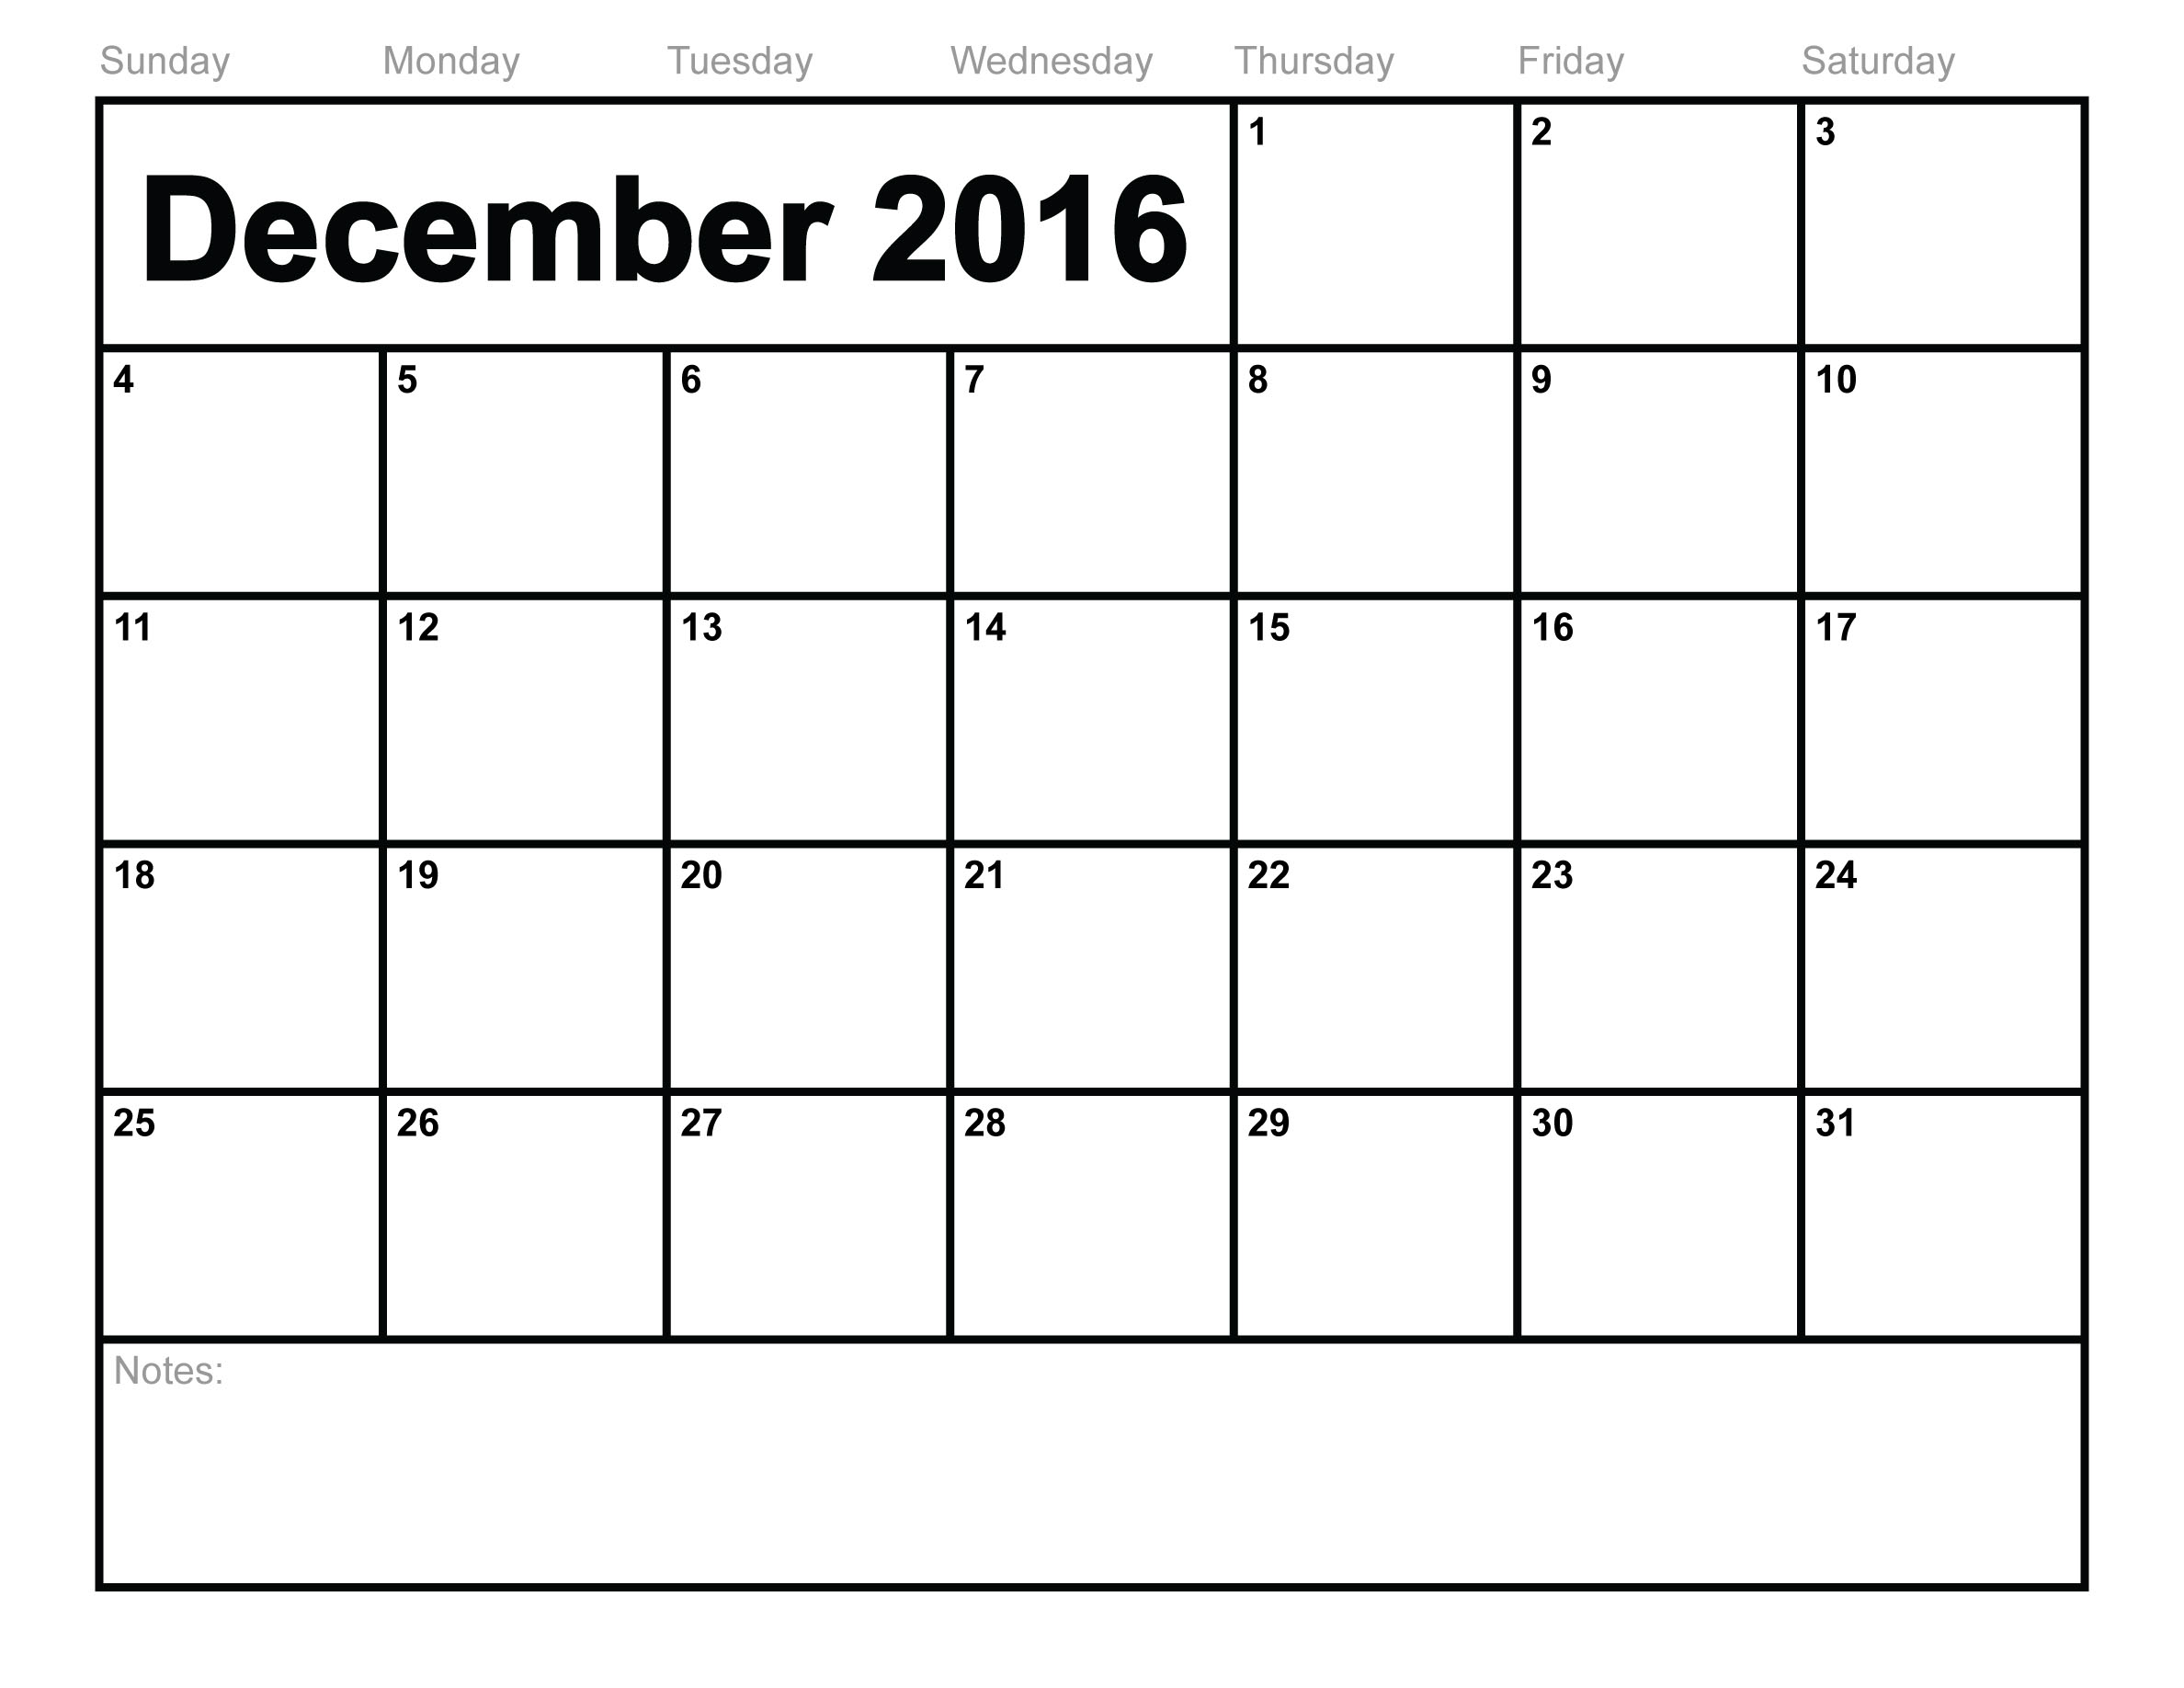 image regarding Nov Calendar Printable Pdf known as December 2016 Calendar Printable With Vacations templates